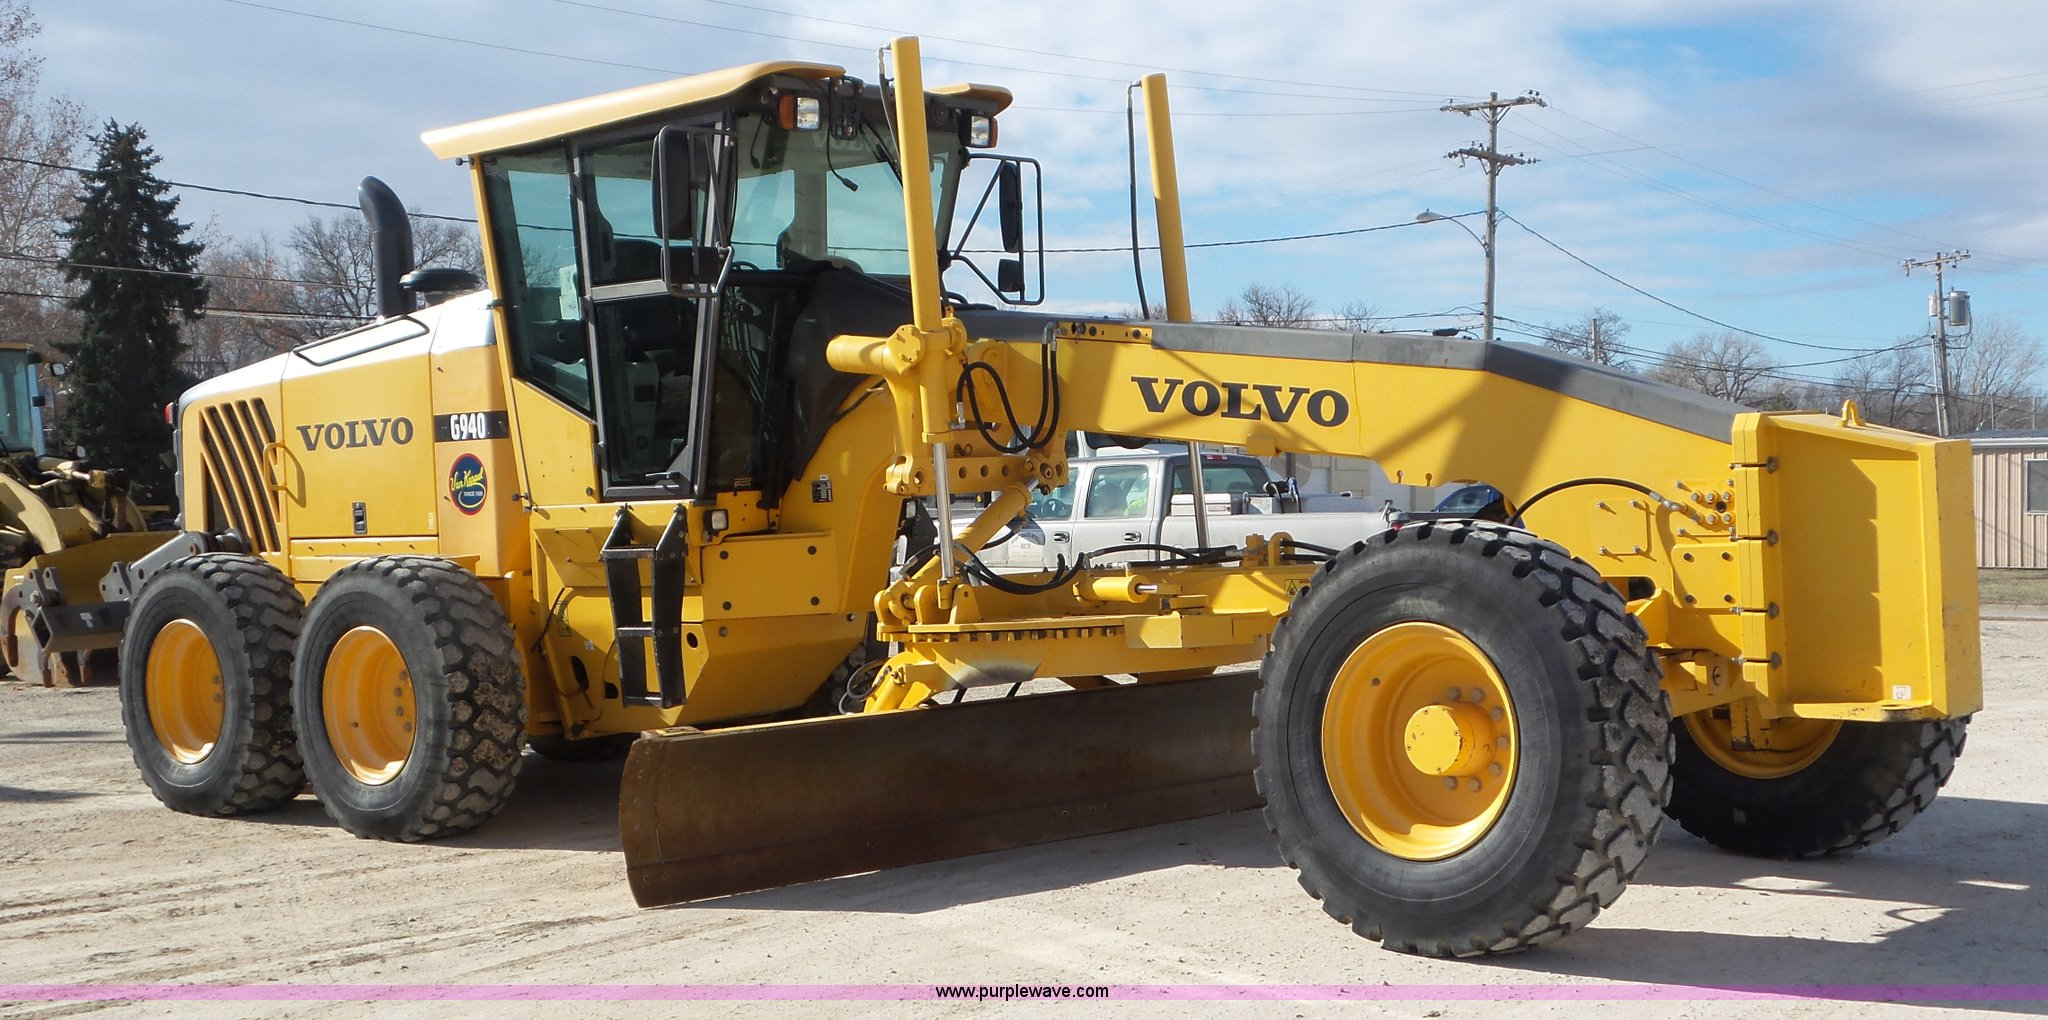 2007 Volvo G940 motor grader | Item J8389 | SOLD! February 1